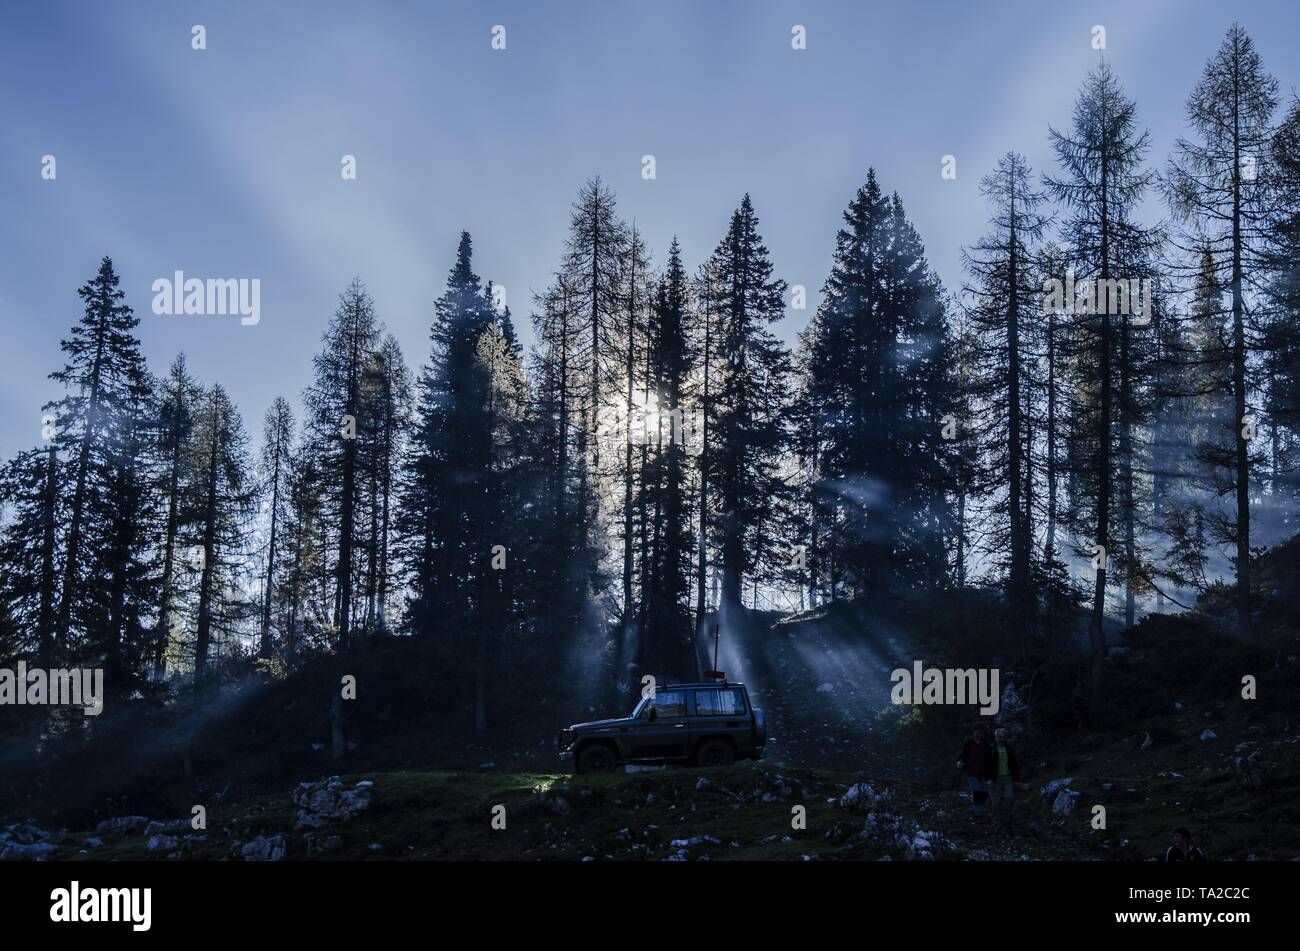 A 4x4 car on a hill in a forest with tall trees with sunlight shining through - Stock Image